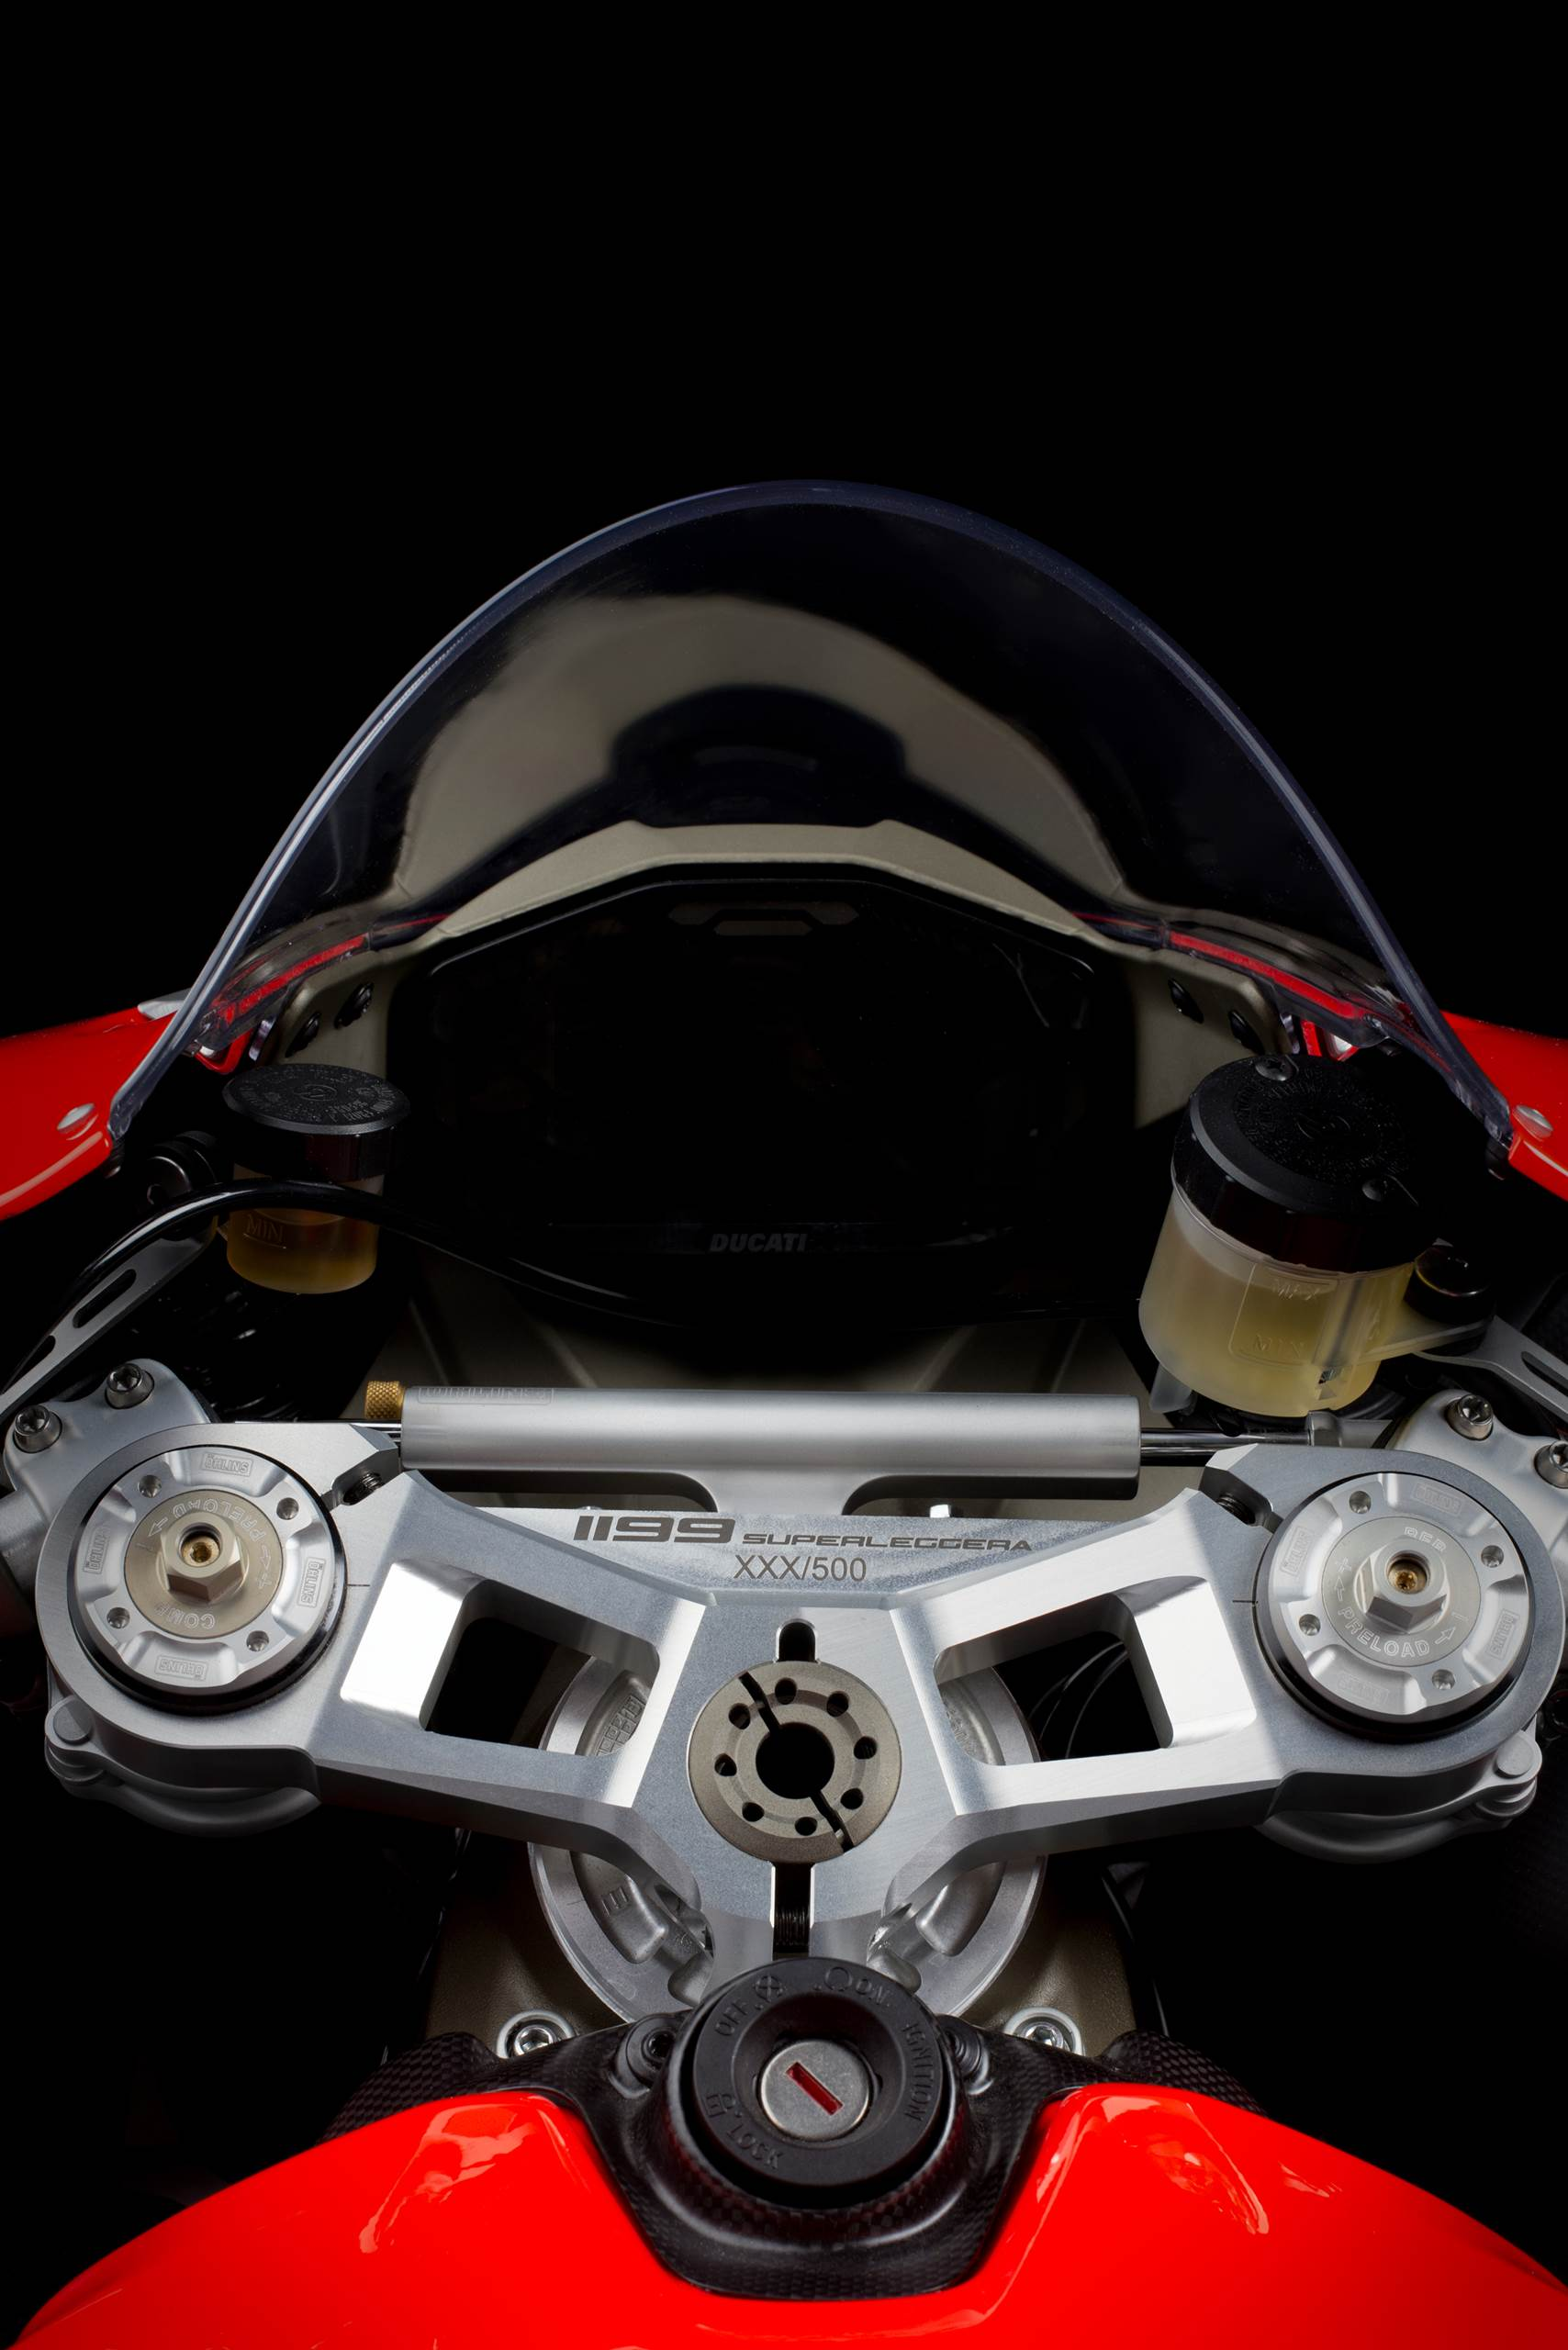 2014 Ducati 1199 Superleggera - 13